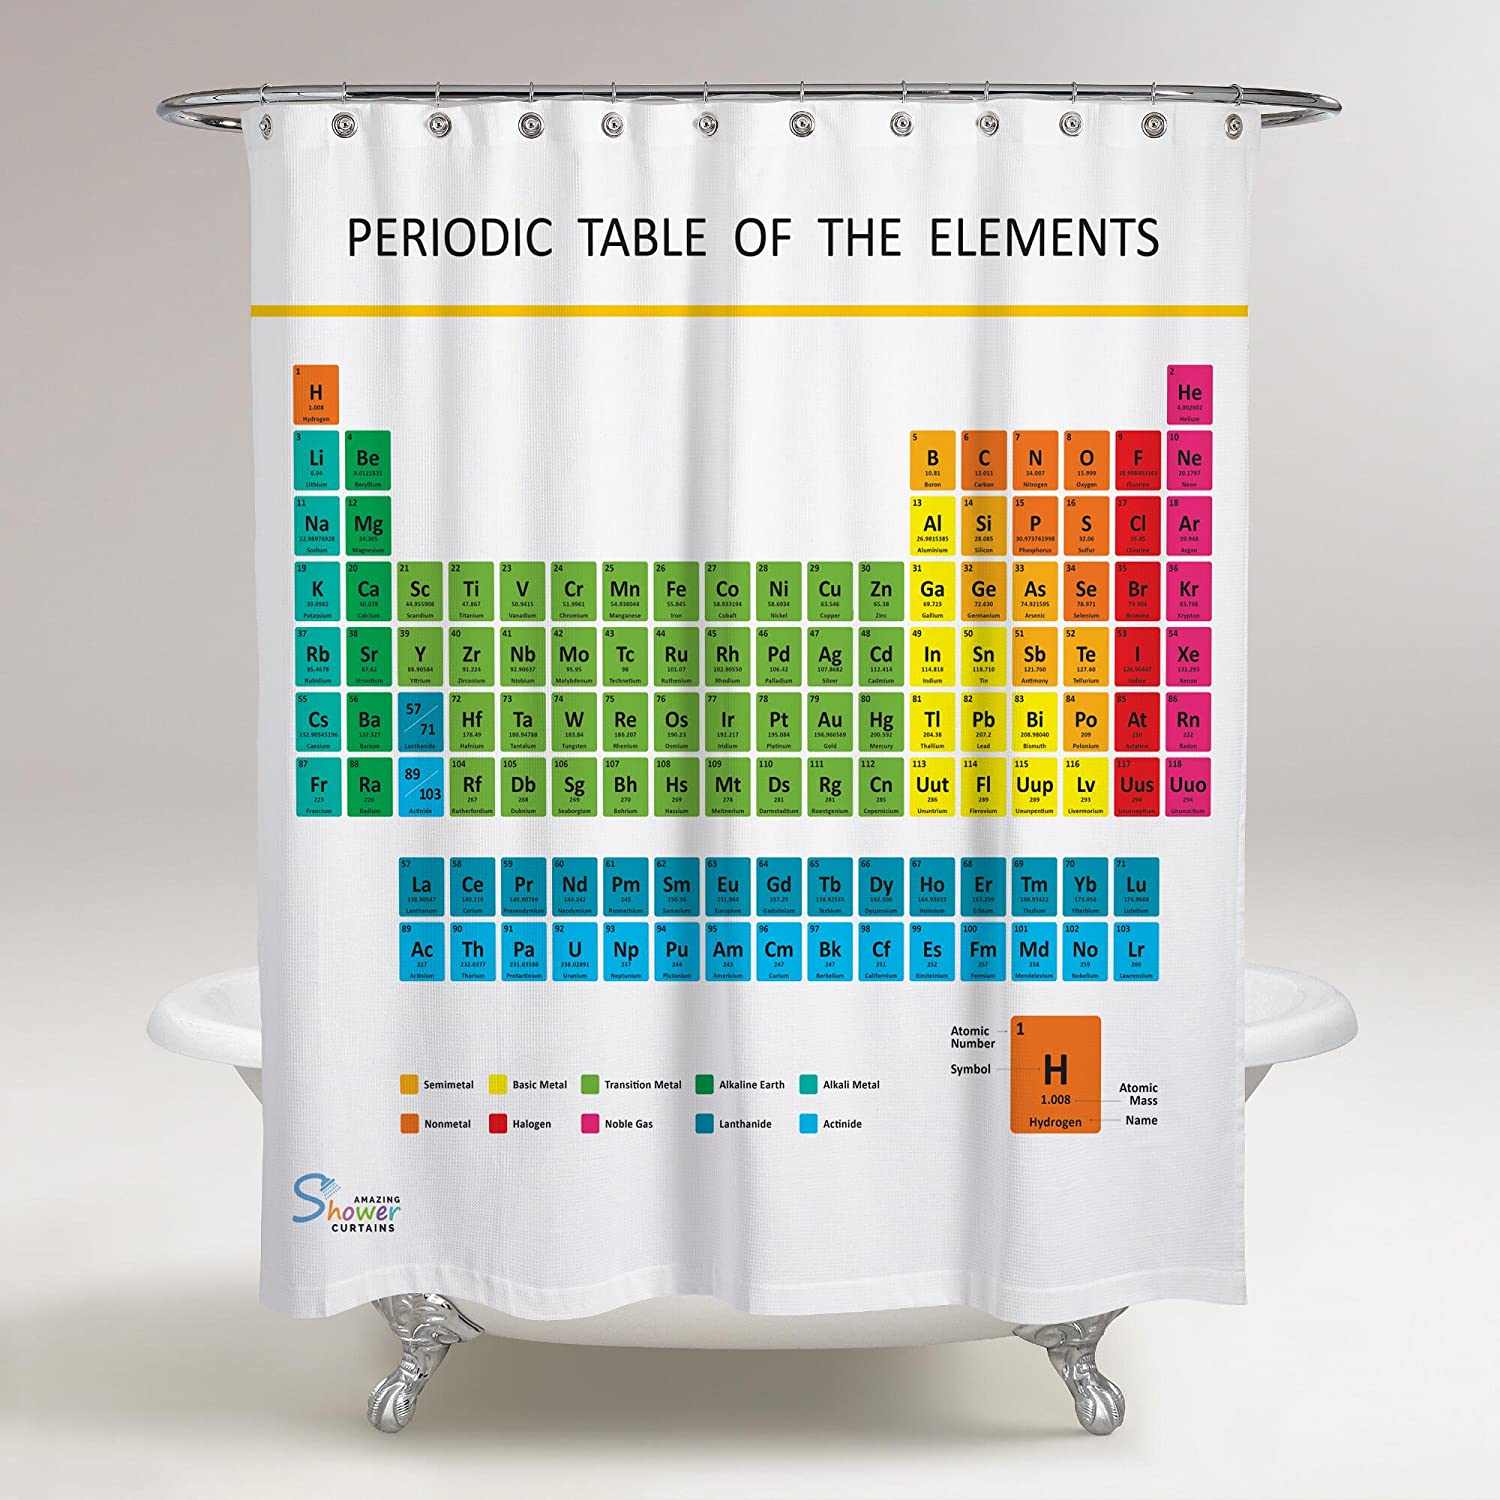 Amazon amazing shower curtains updated 2017 periodic table amazon amazing shower curtains updated 2017 periodic table of elements shower curtain 70x70 home kitchen gamestrikefo Image collections